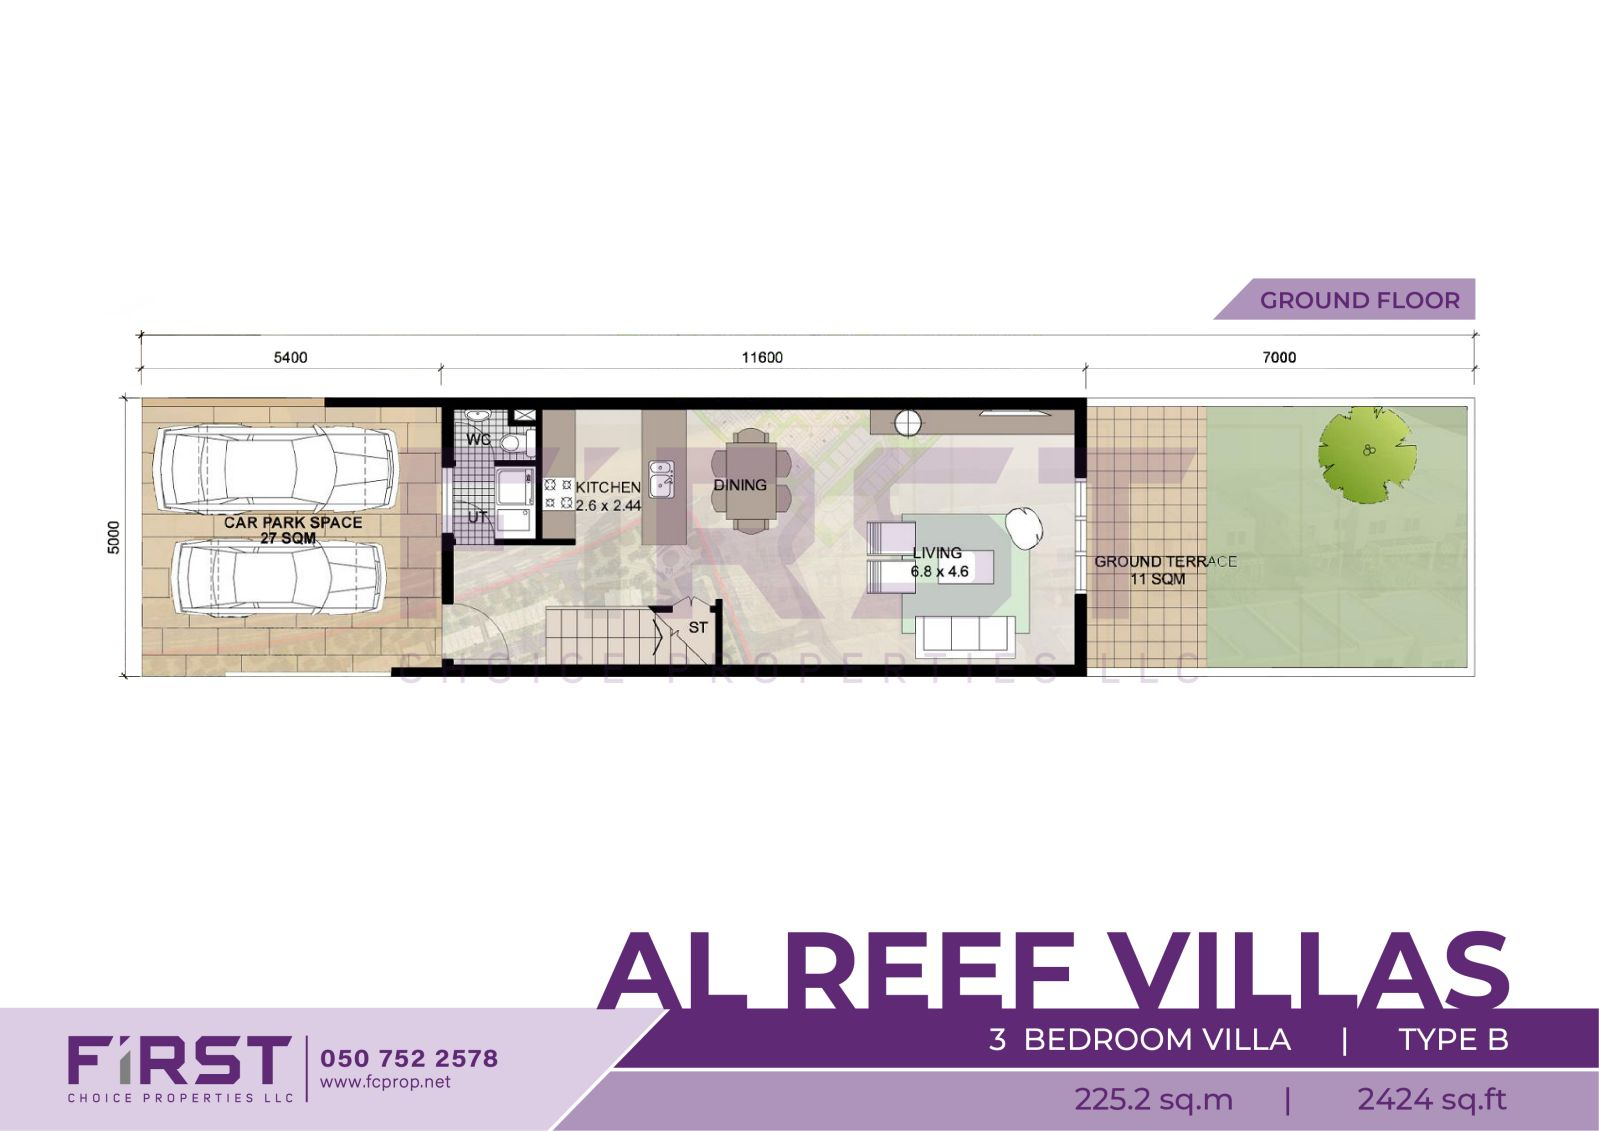 Floor Plan of 3 Bedroom Villa Type B in Al Reef Villas Al Reef Abu Dhabi UAE 225.2 sq.m 2424 sq.ft 2.jpg